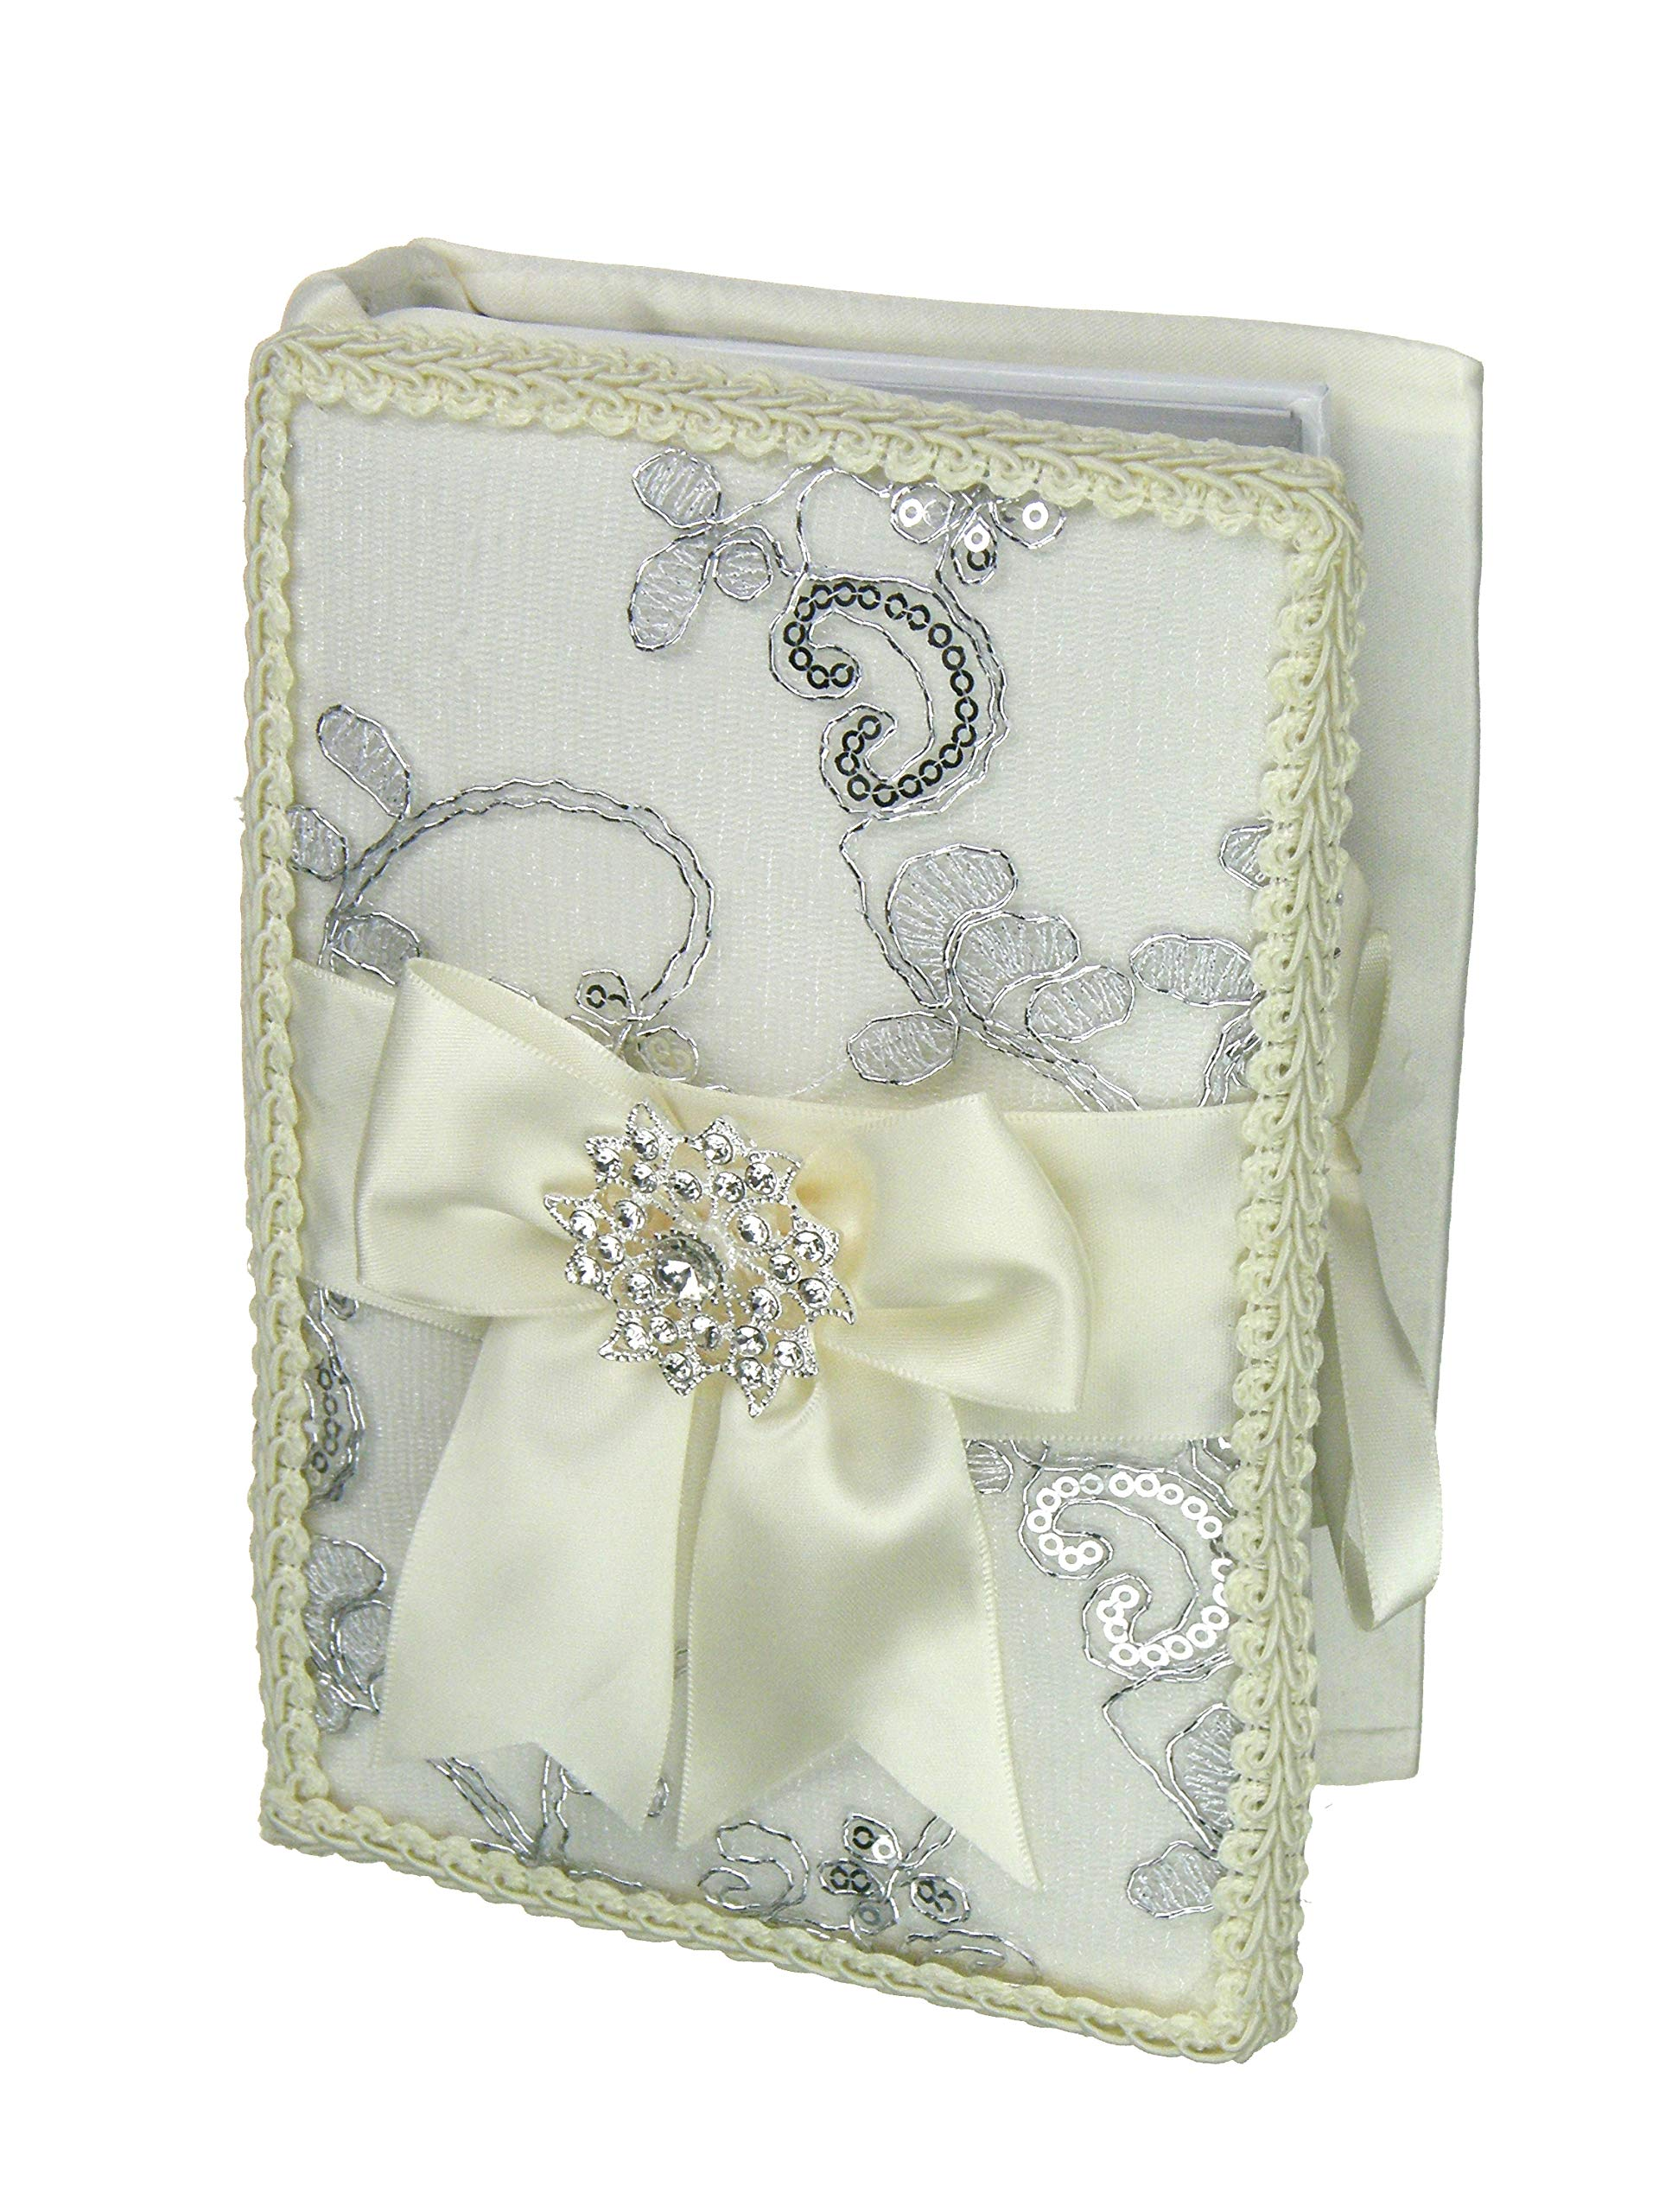 DivaDesigns Spanish or English Wedding Decorative Bible - Metallic Embroidery and Crystal Pendant (Spanish Version/White-Ivory)